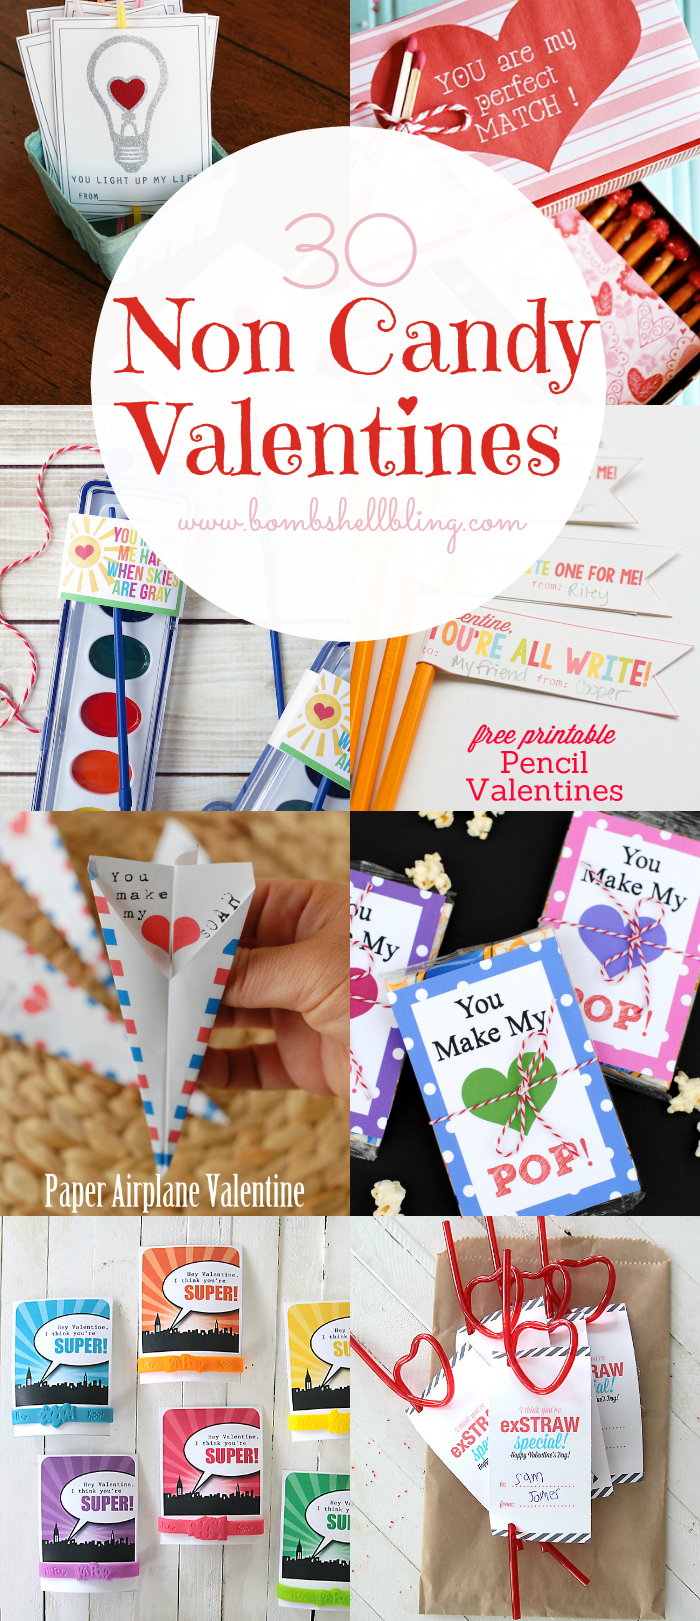 Non candy valentine ideas printables over 30 to choose from for Valentine party crafts for school